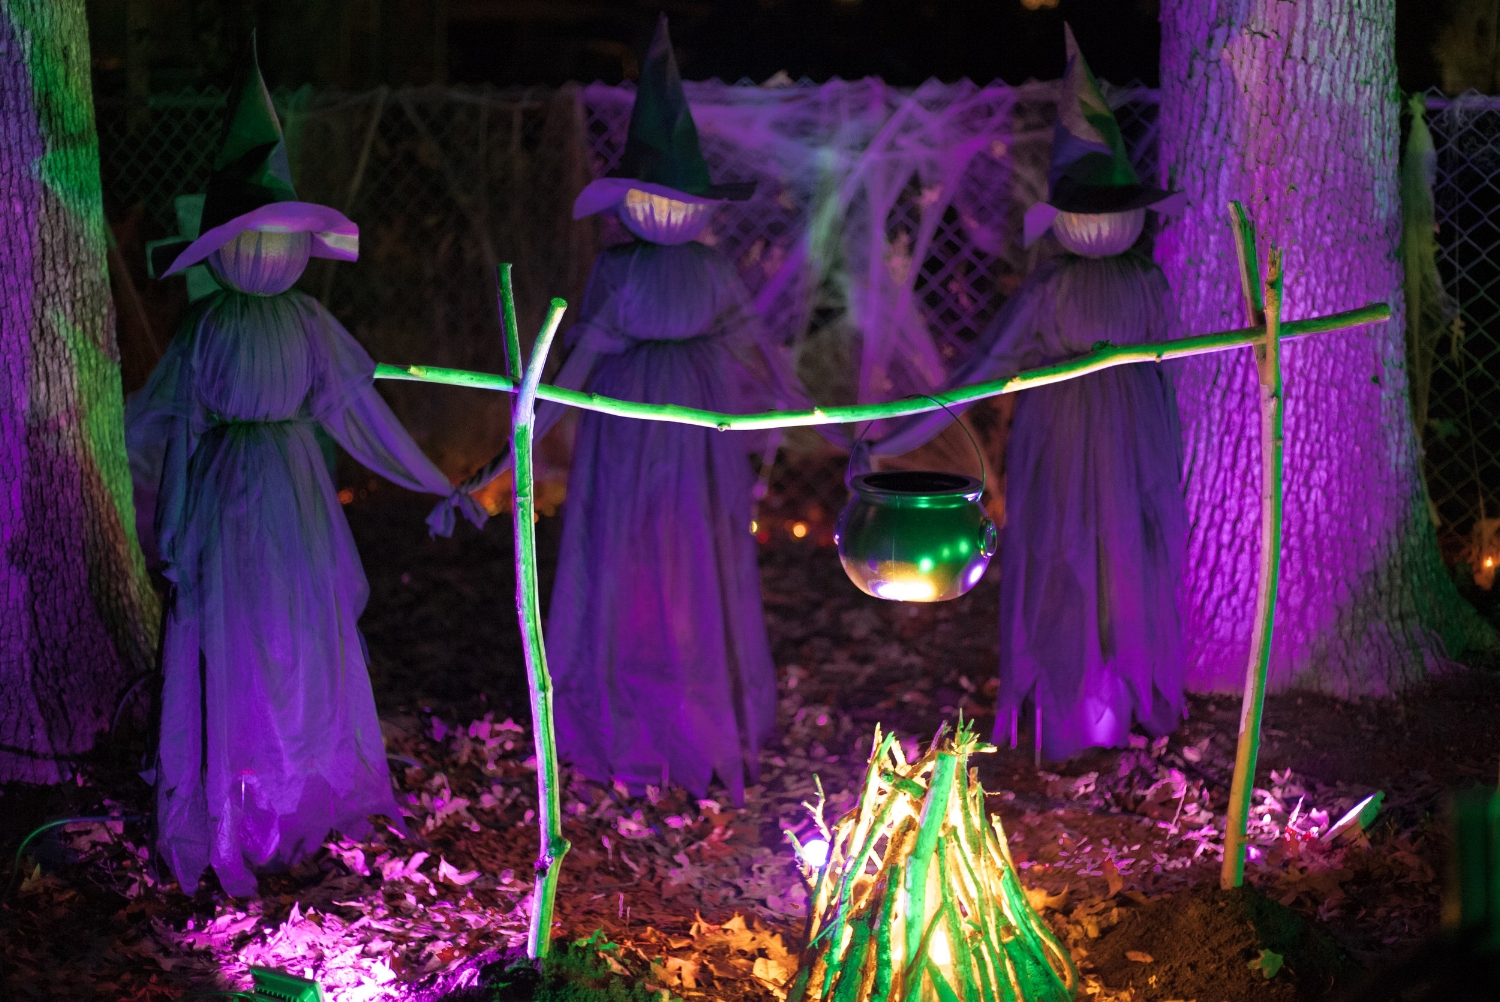 With LED flood lights I was able to uplight the witches to make them more visible. The purple also reflects well off the white cloth above.